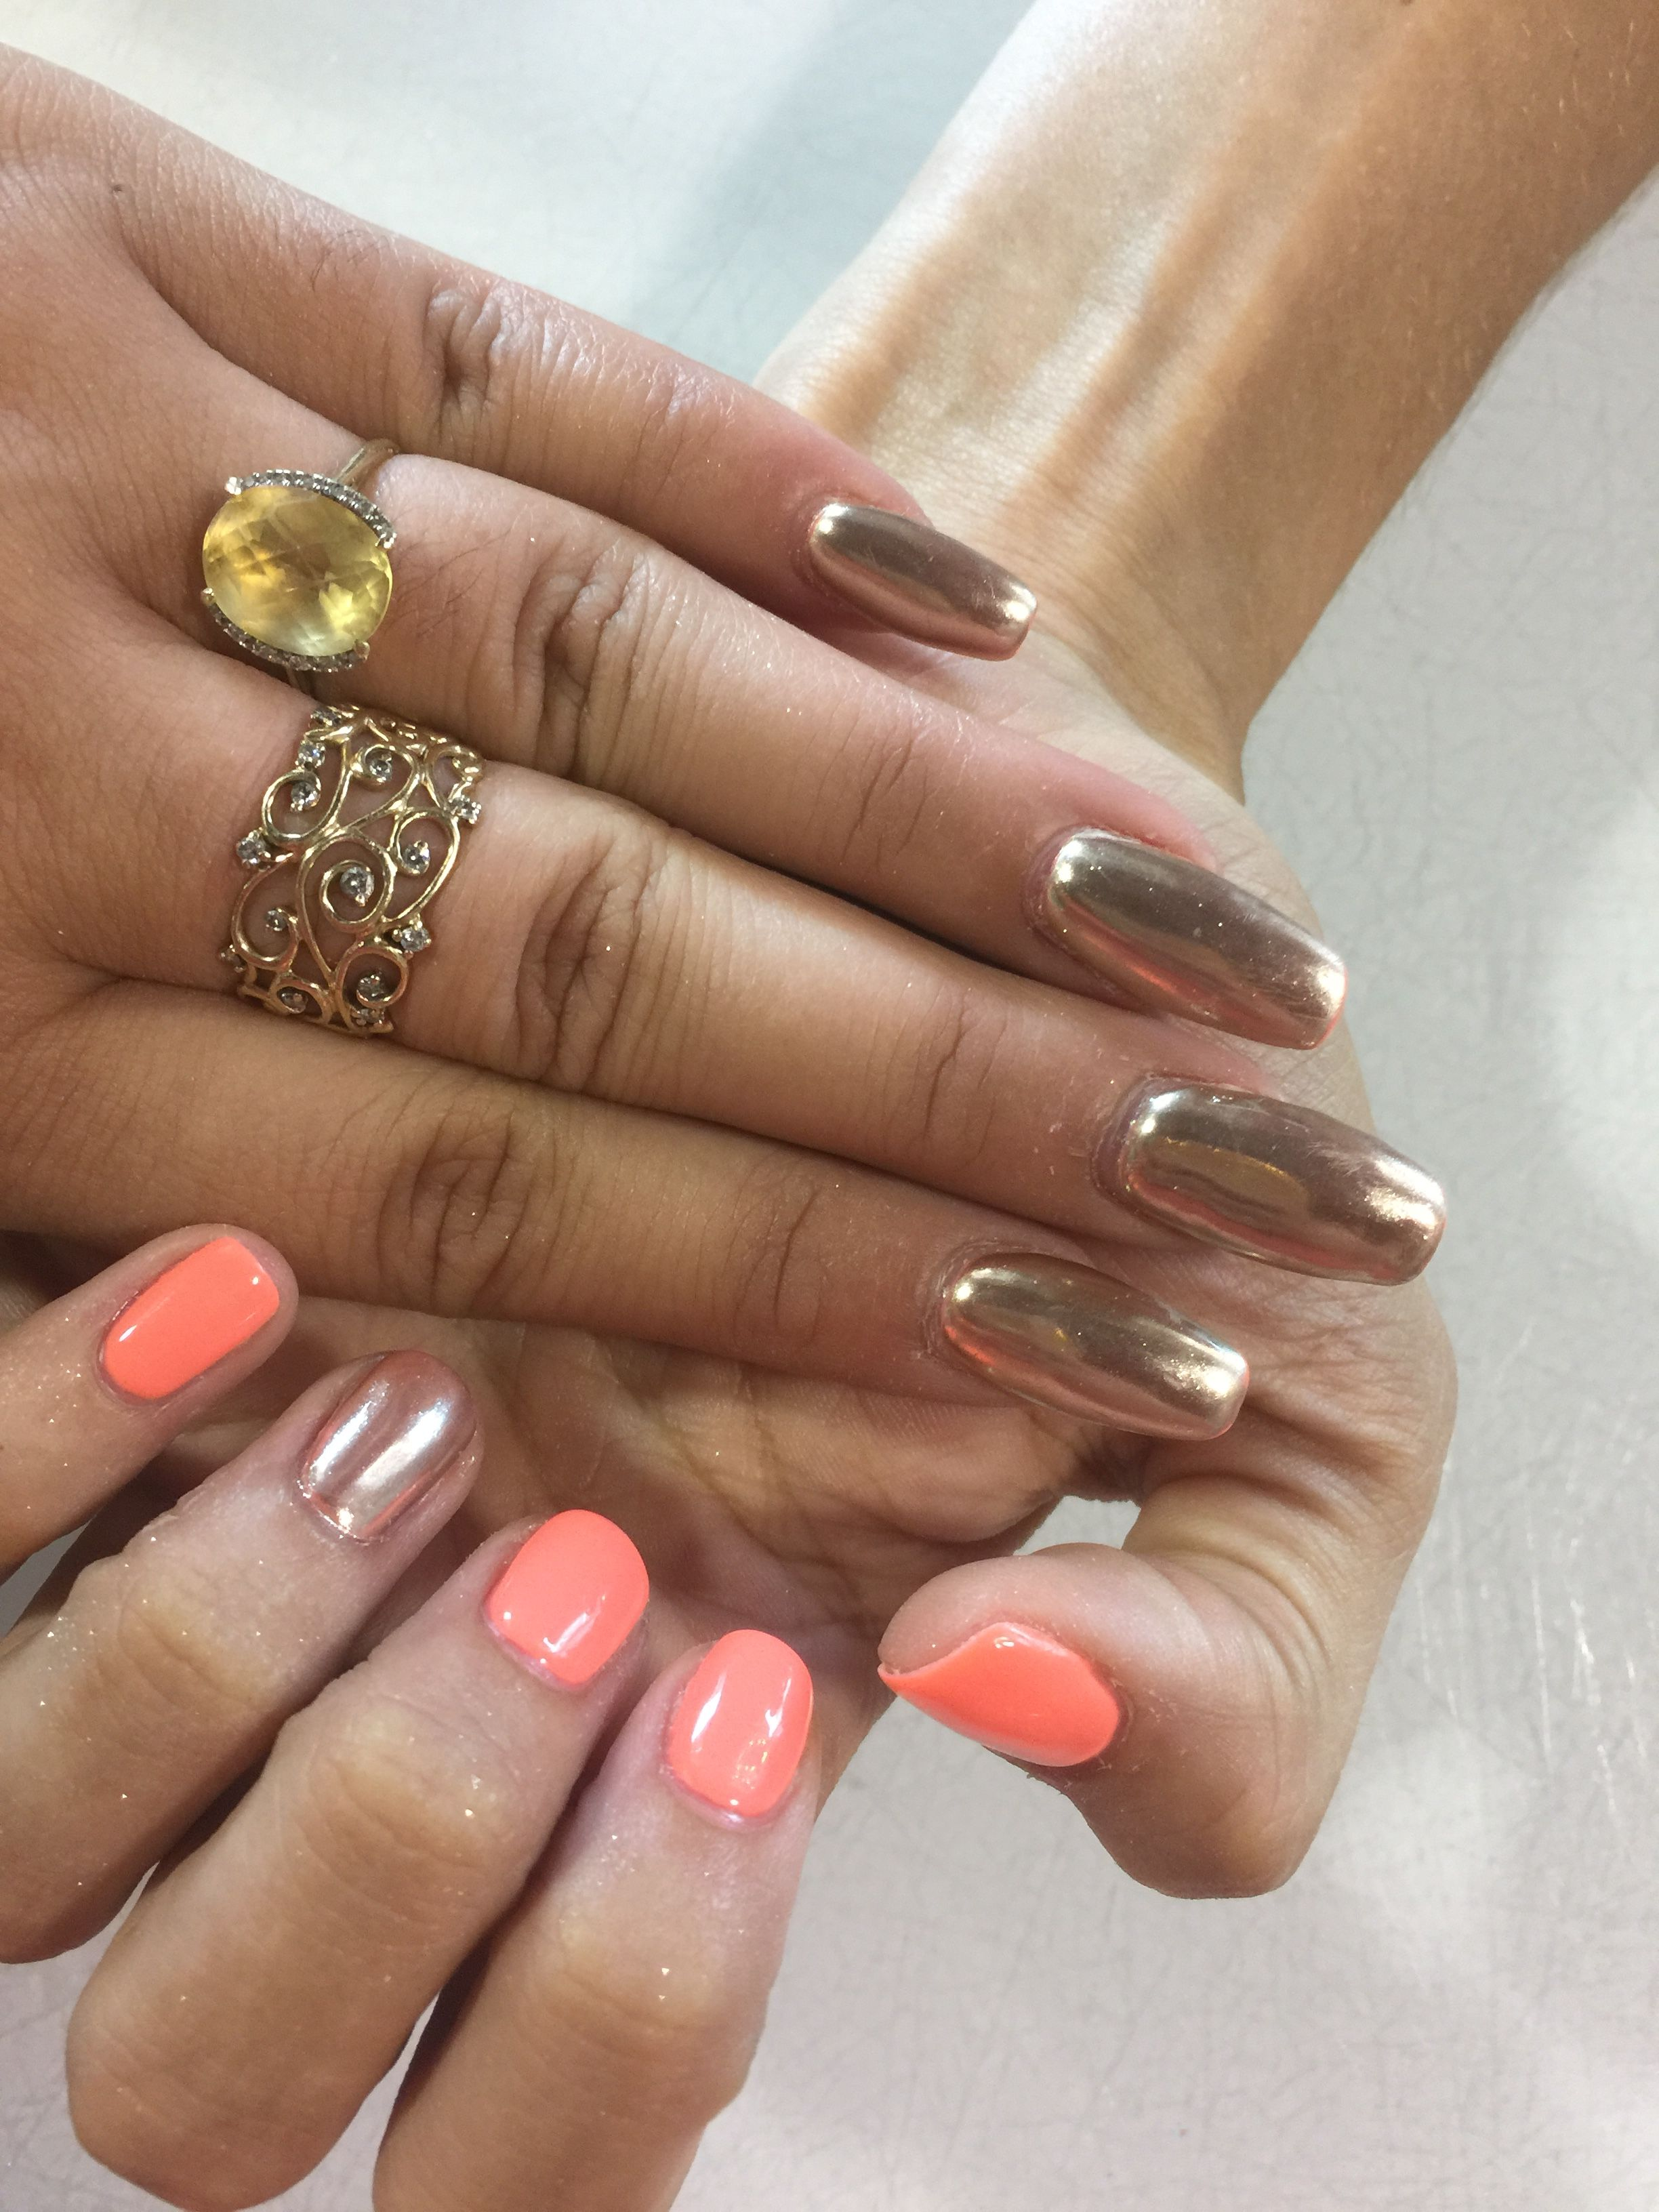 Im brighter than you by gelish with chrome on top ...